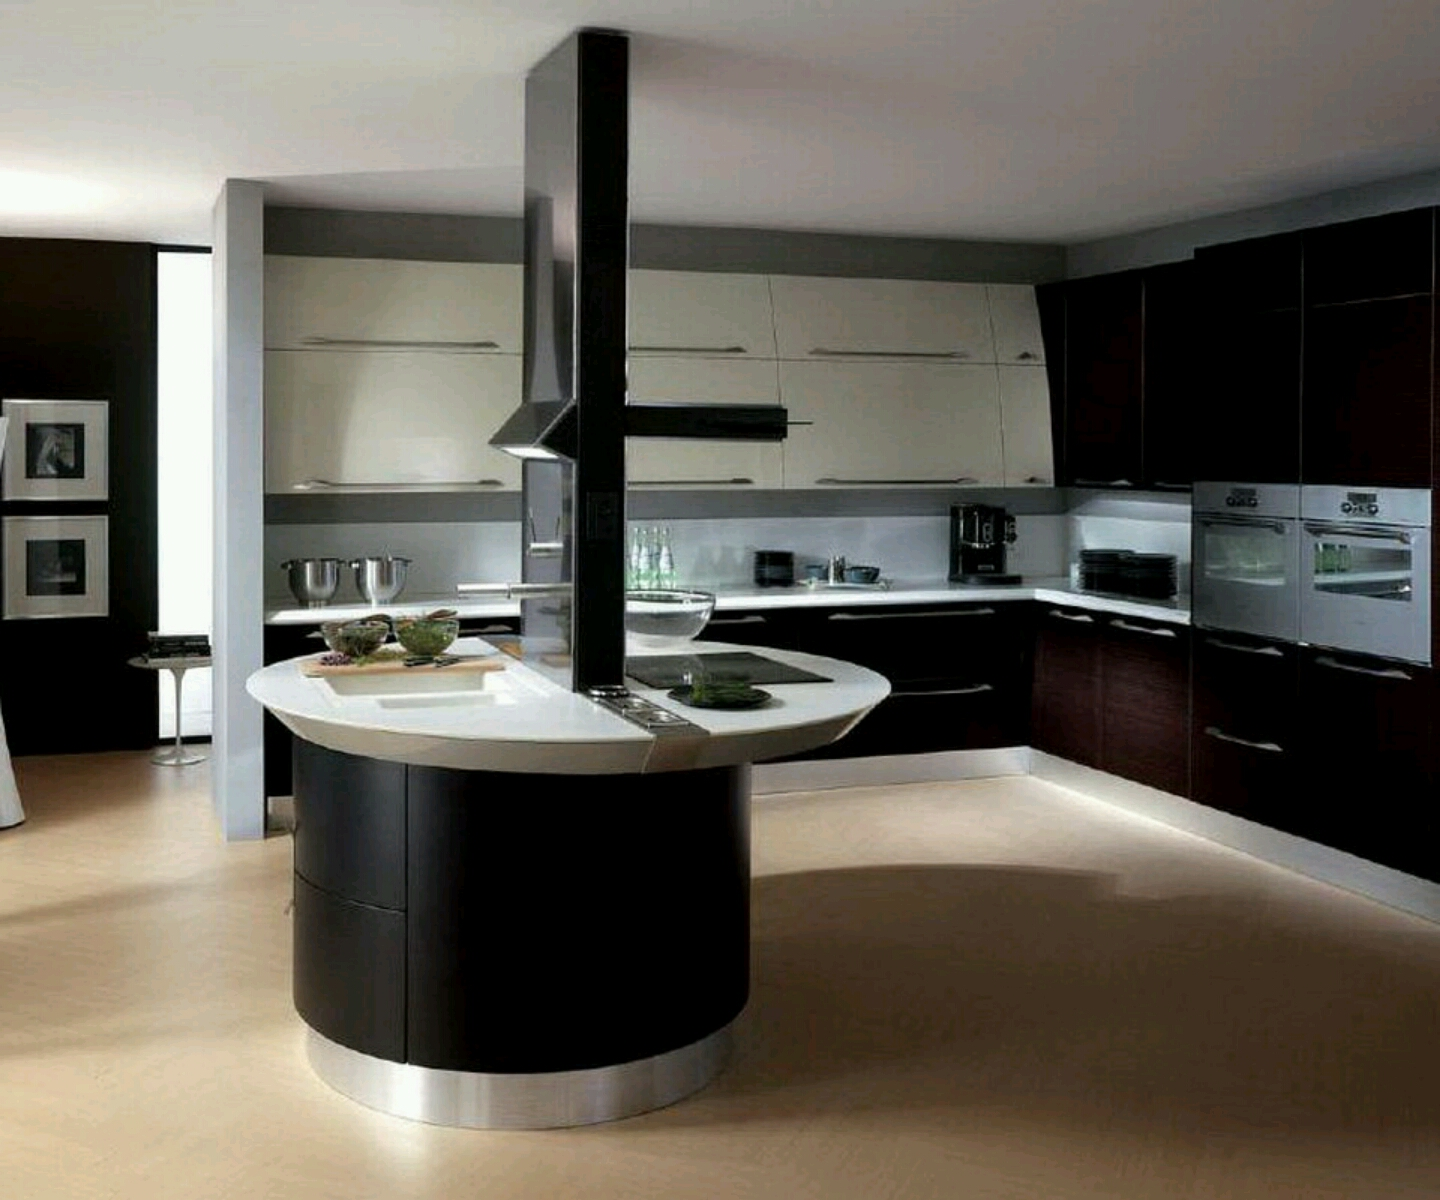 large luxury kitchen large luxury kitchen with two. dreamy luxury ...